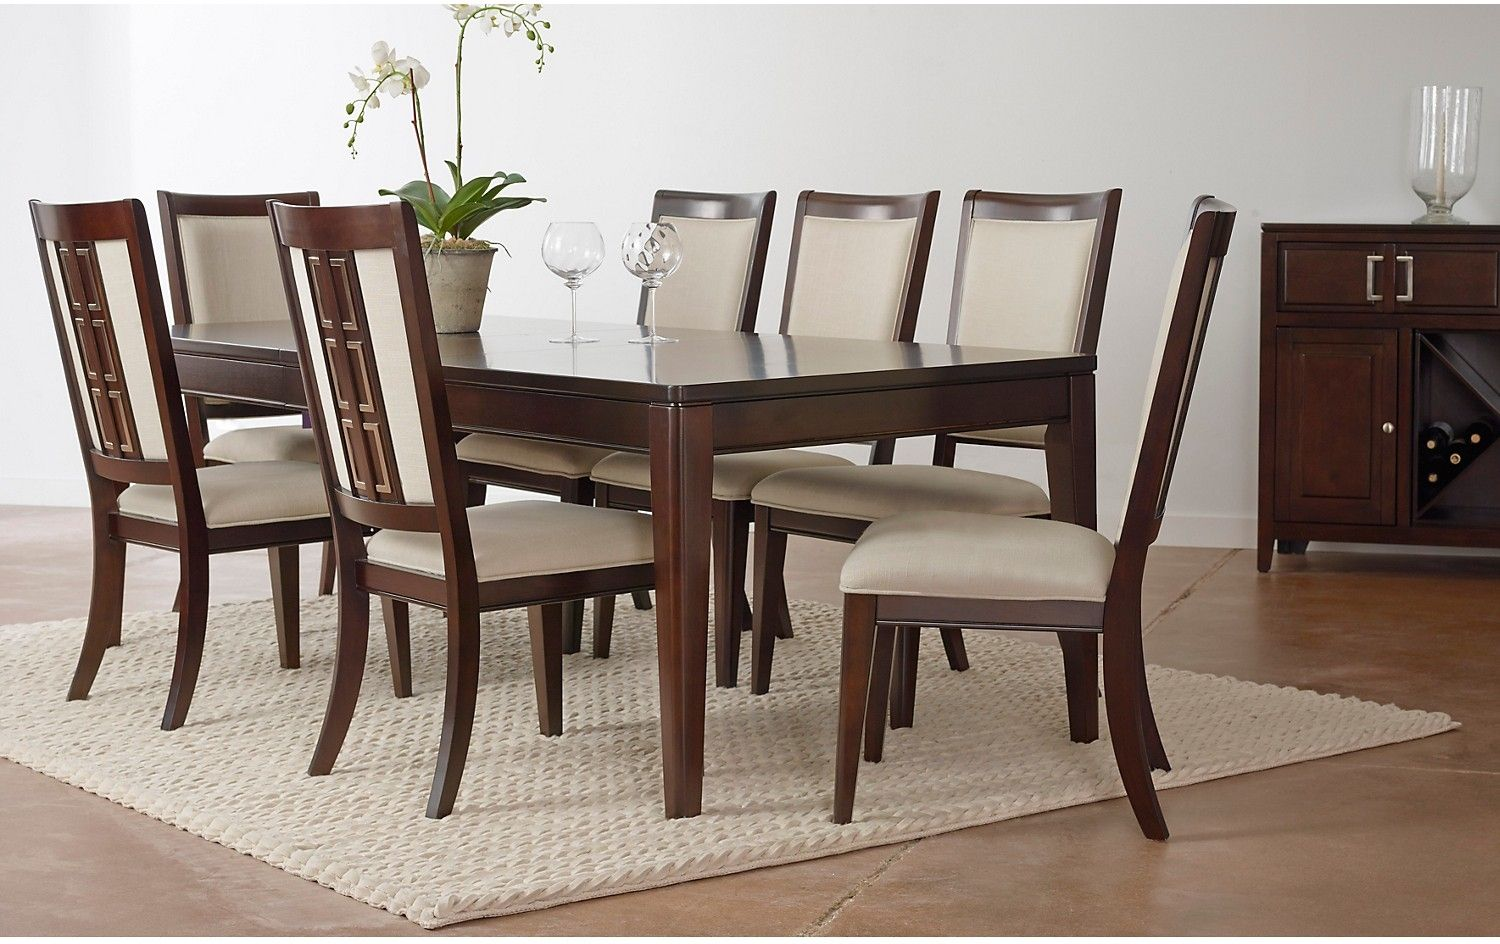 1000+ images about price comps on pinterest   upholstery, dining